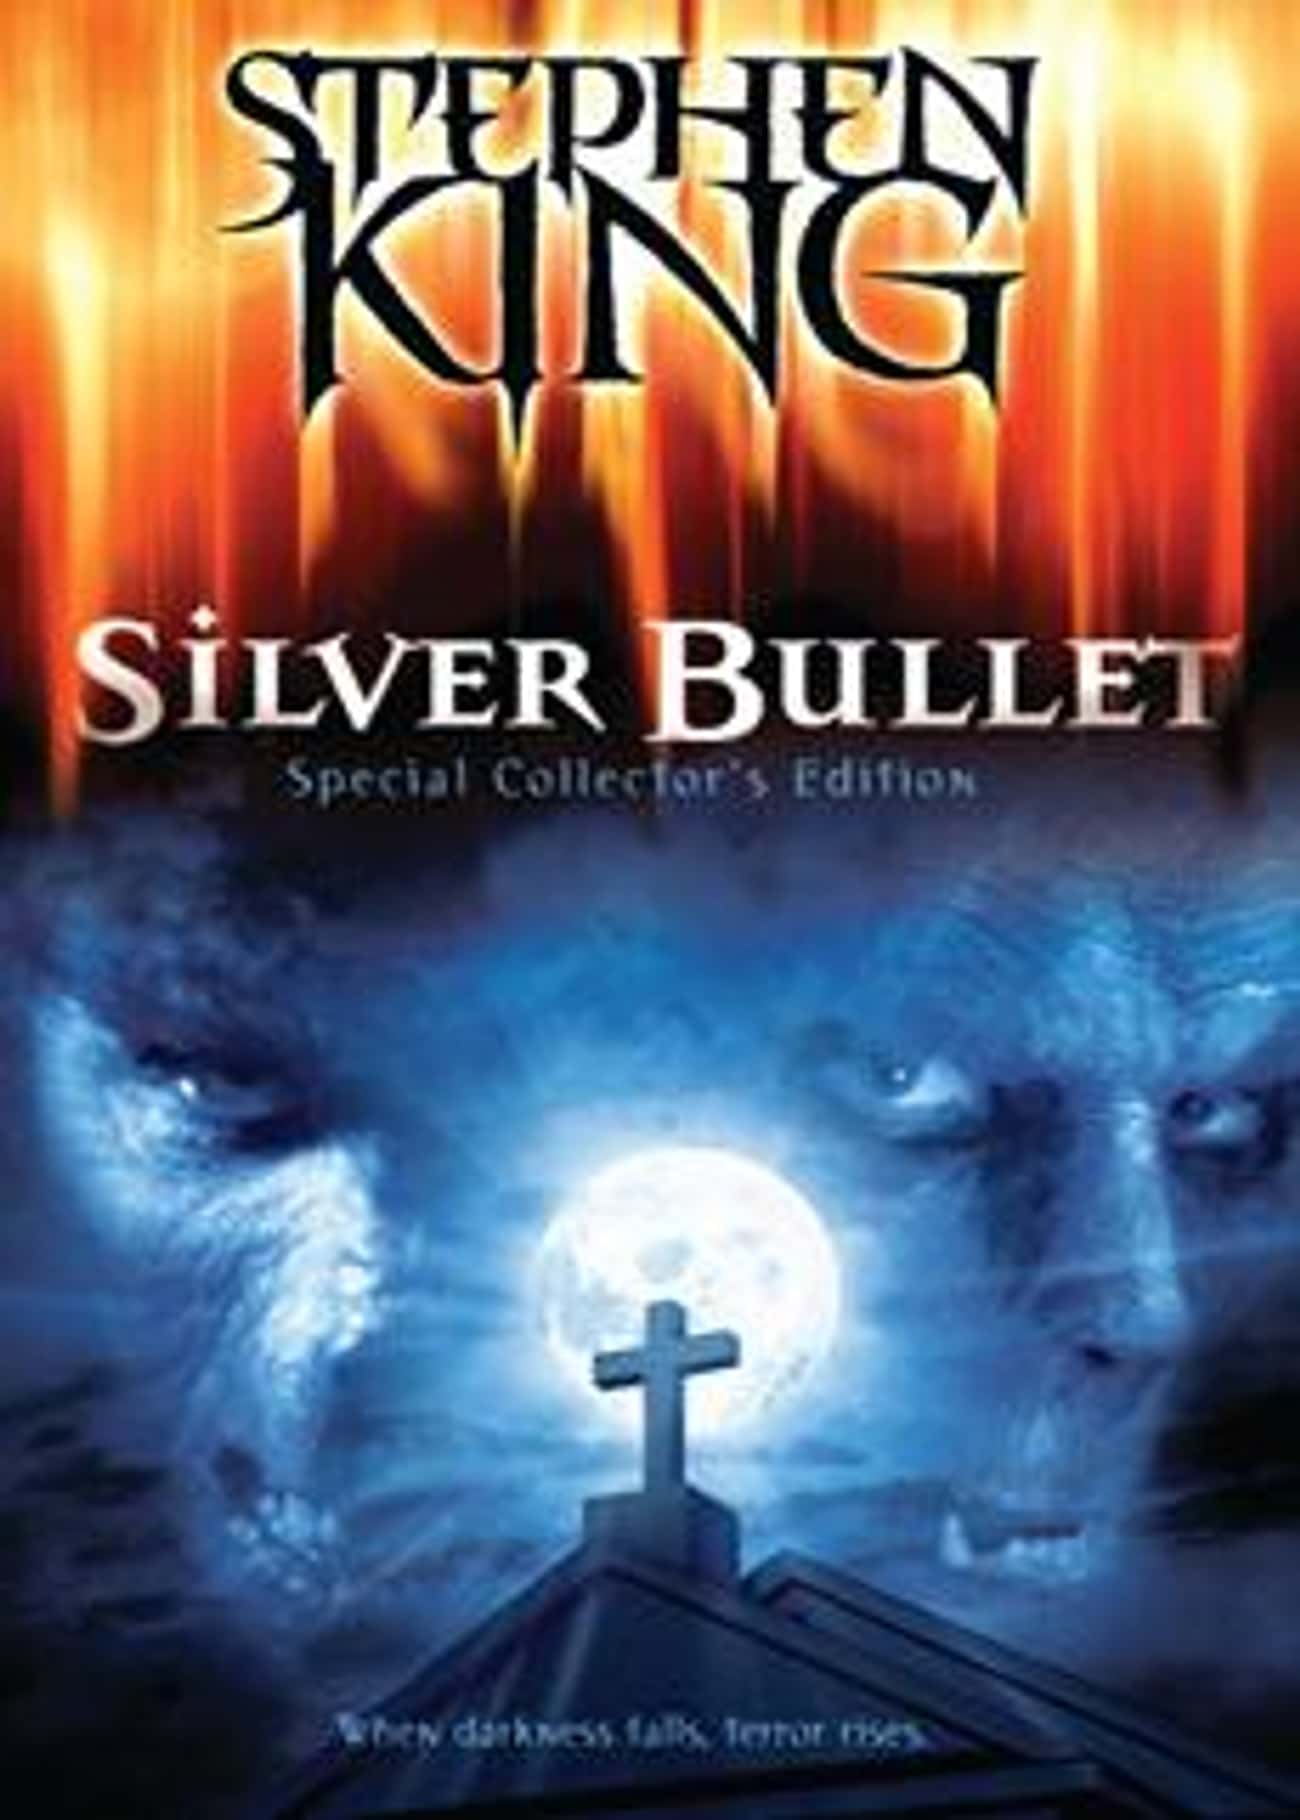 Silver Bullet is listed (or ranked) 3 on the list Underrated Halloween Movies You Should Watch This Year